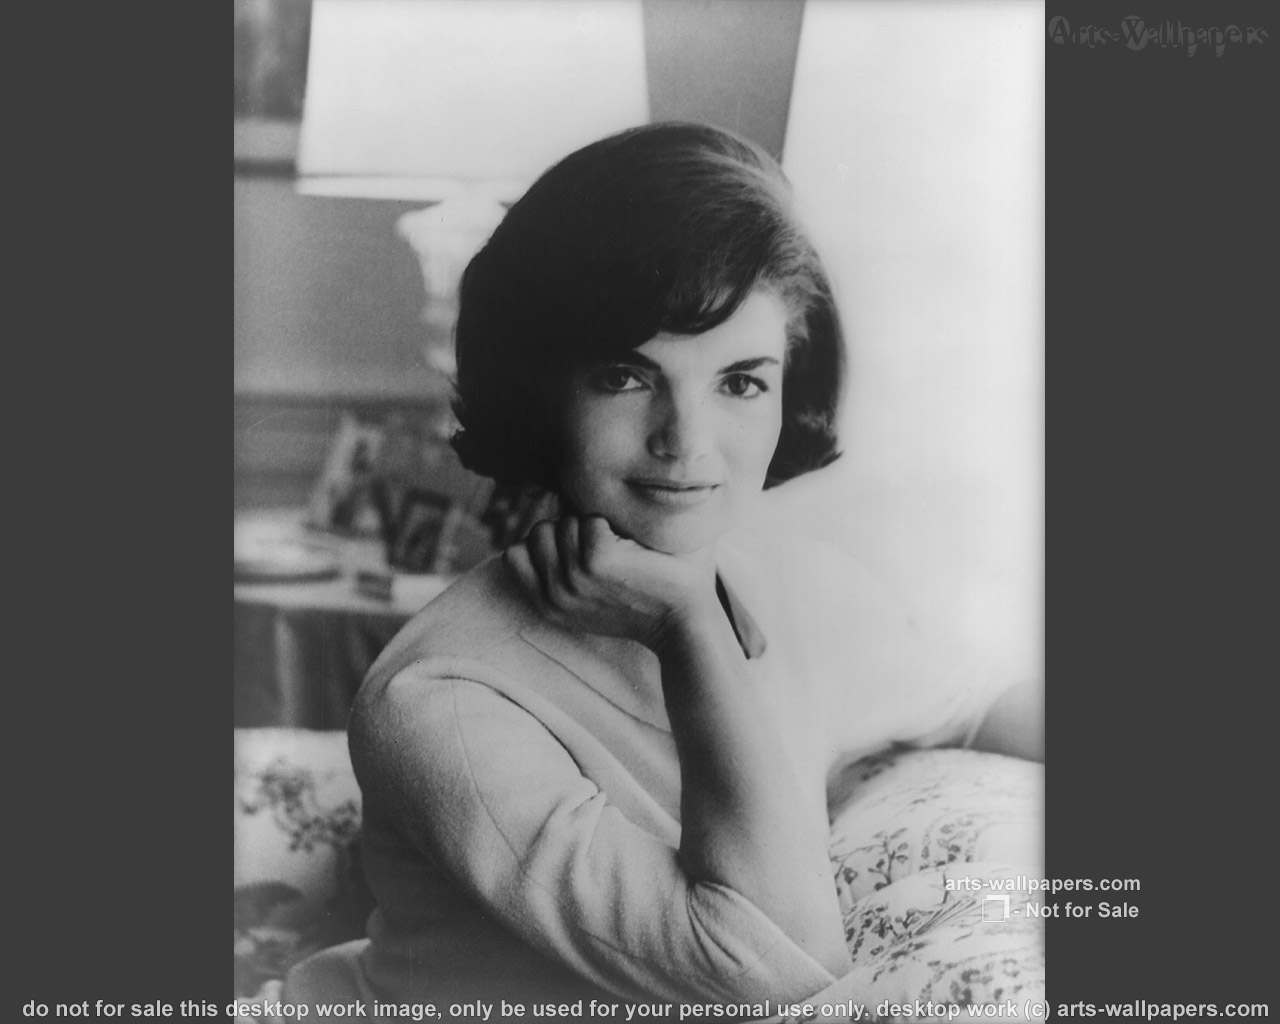 a biography of jacqueline bouvier kennedy onassis the wife of president john f kennedy Jacqueline bouvier kennedy onassis has 909 ratings and 33 reviews this biography of jackie kennedy onassis was overly fawning intelligent, graceful woman, and how much she changed from the time she married john f kennedy to her death.